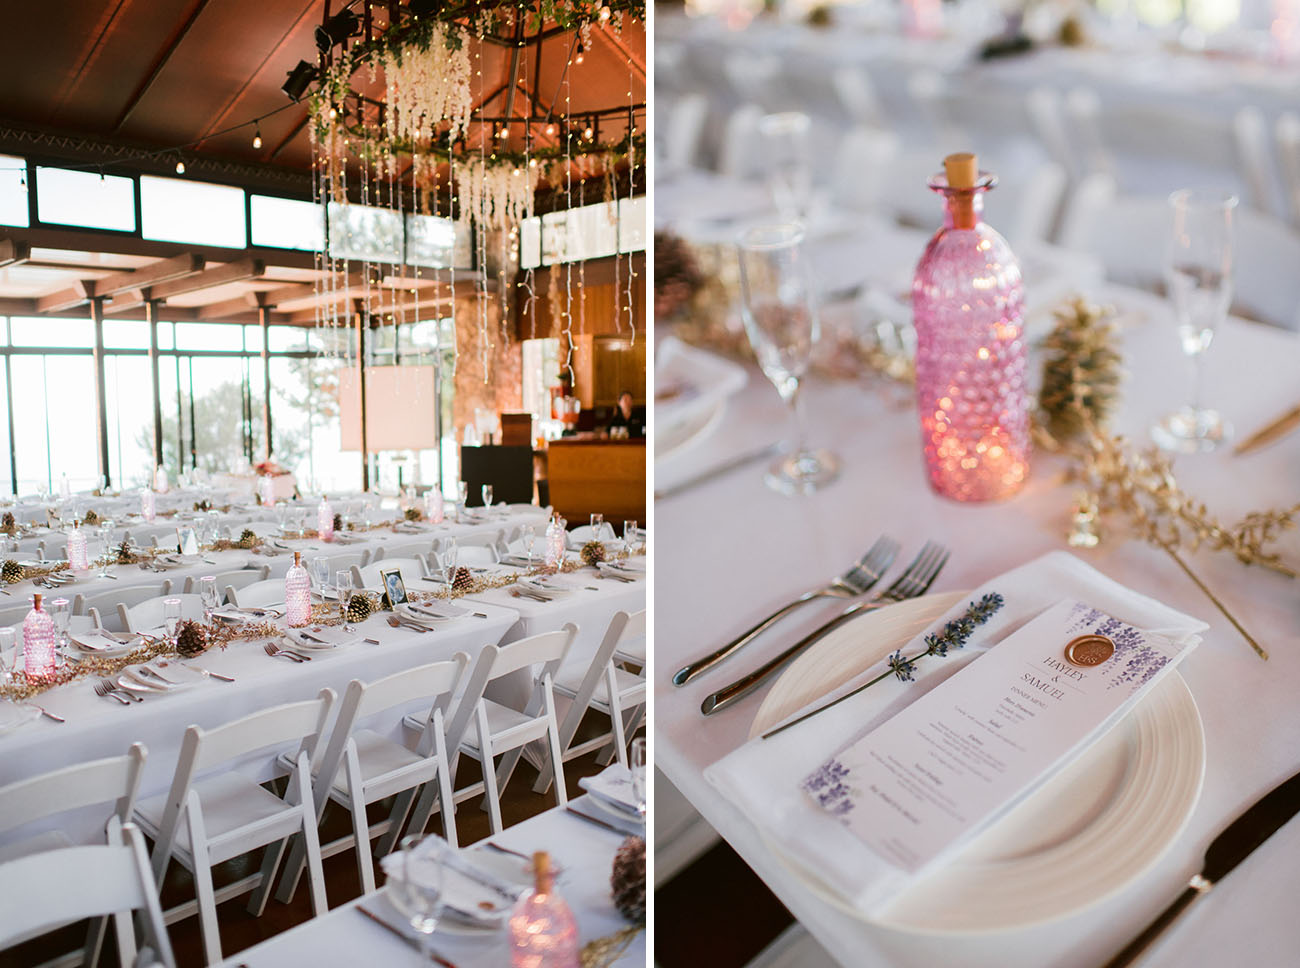 The reception space was done elegant, with lavender, gilded pinecones and herbs, pink bottles with candles